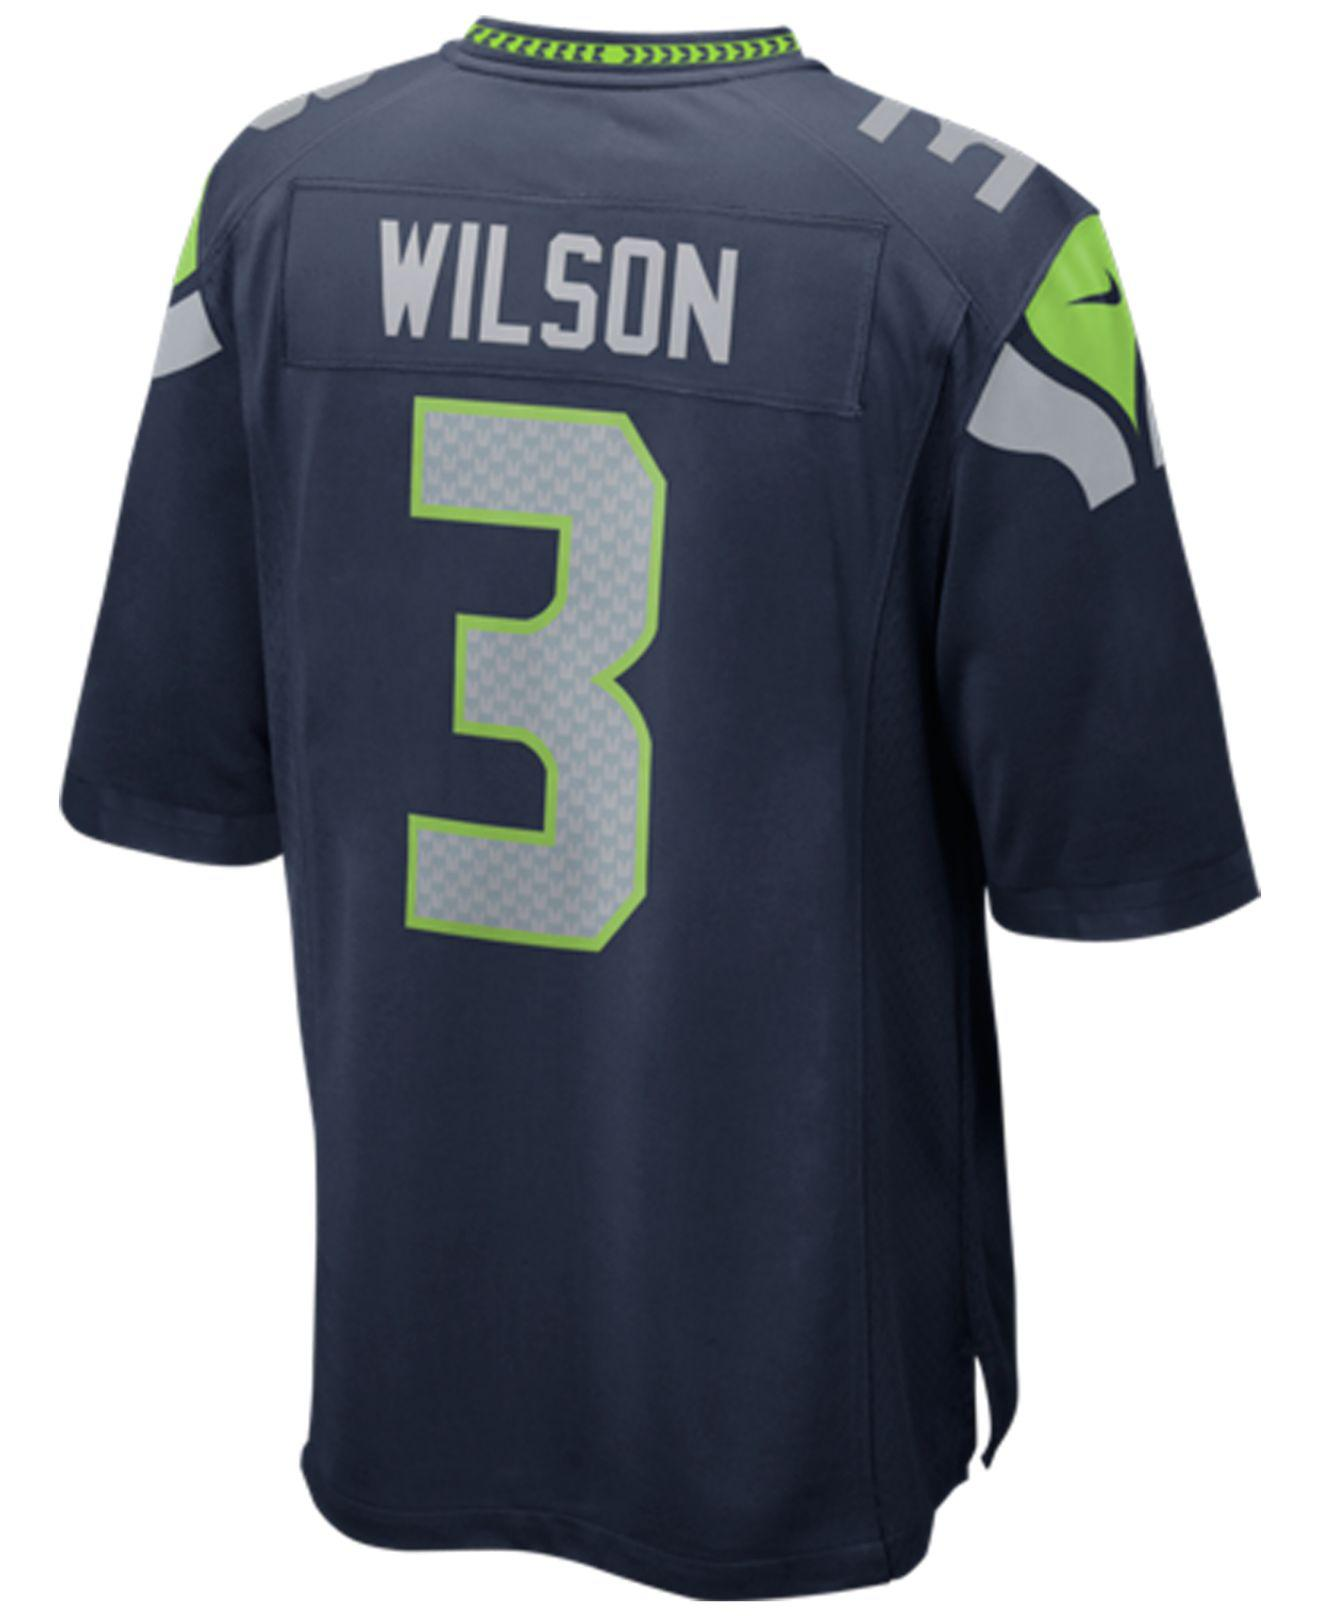 Lyst - Nike Men s Russell Wilson Seattle Seahawks Game Jersey in ... 89bec2b99